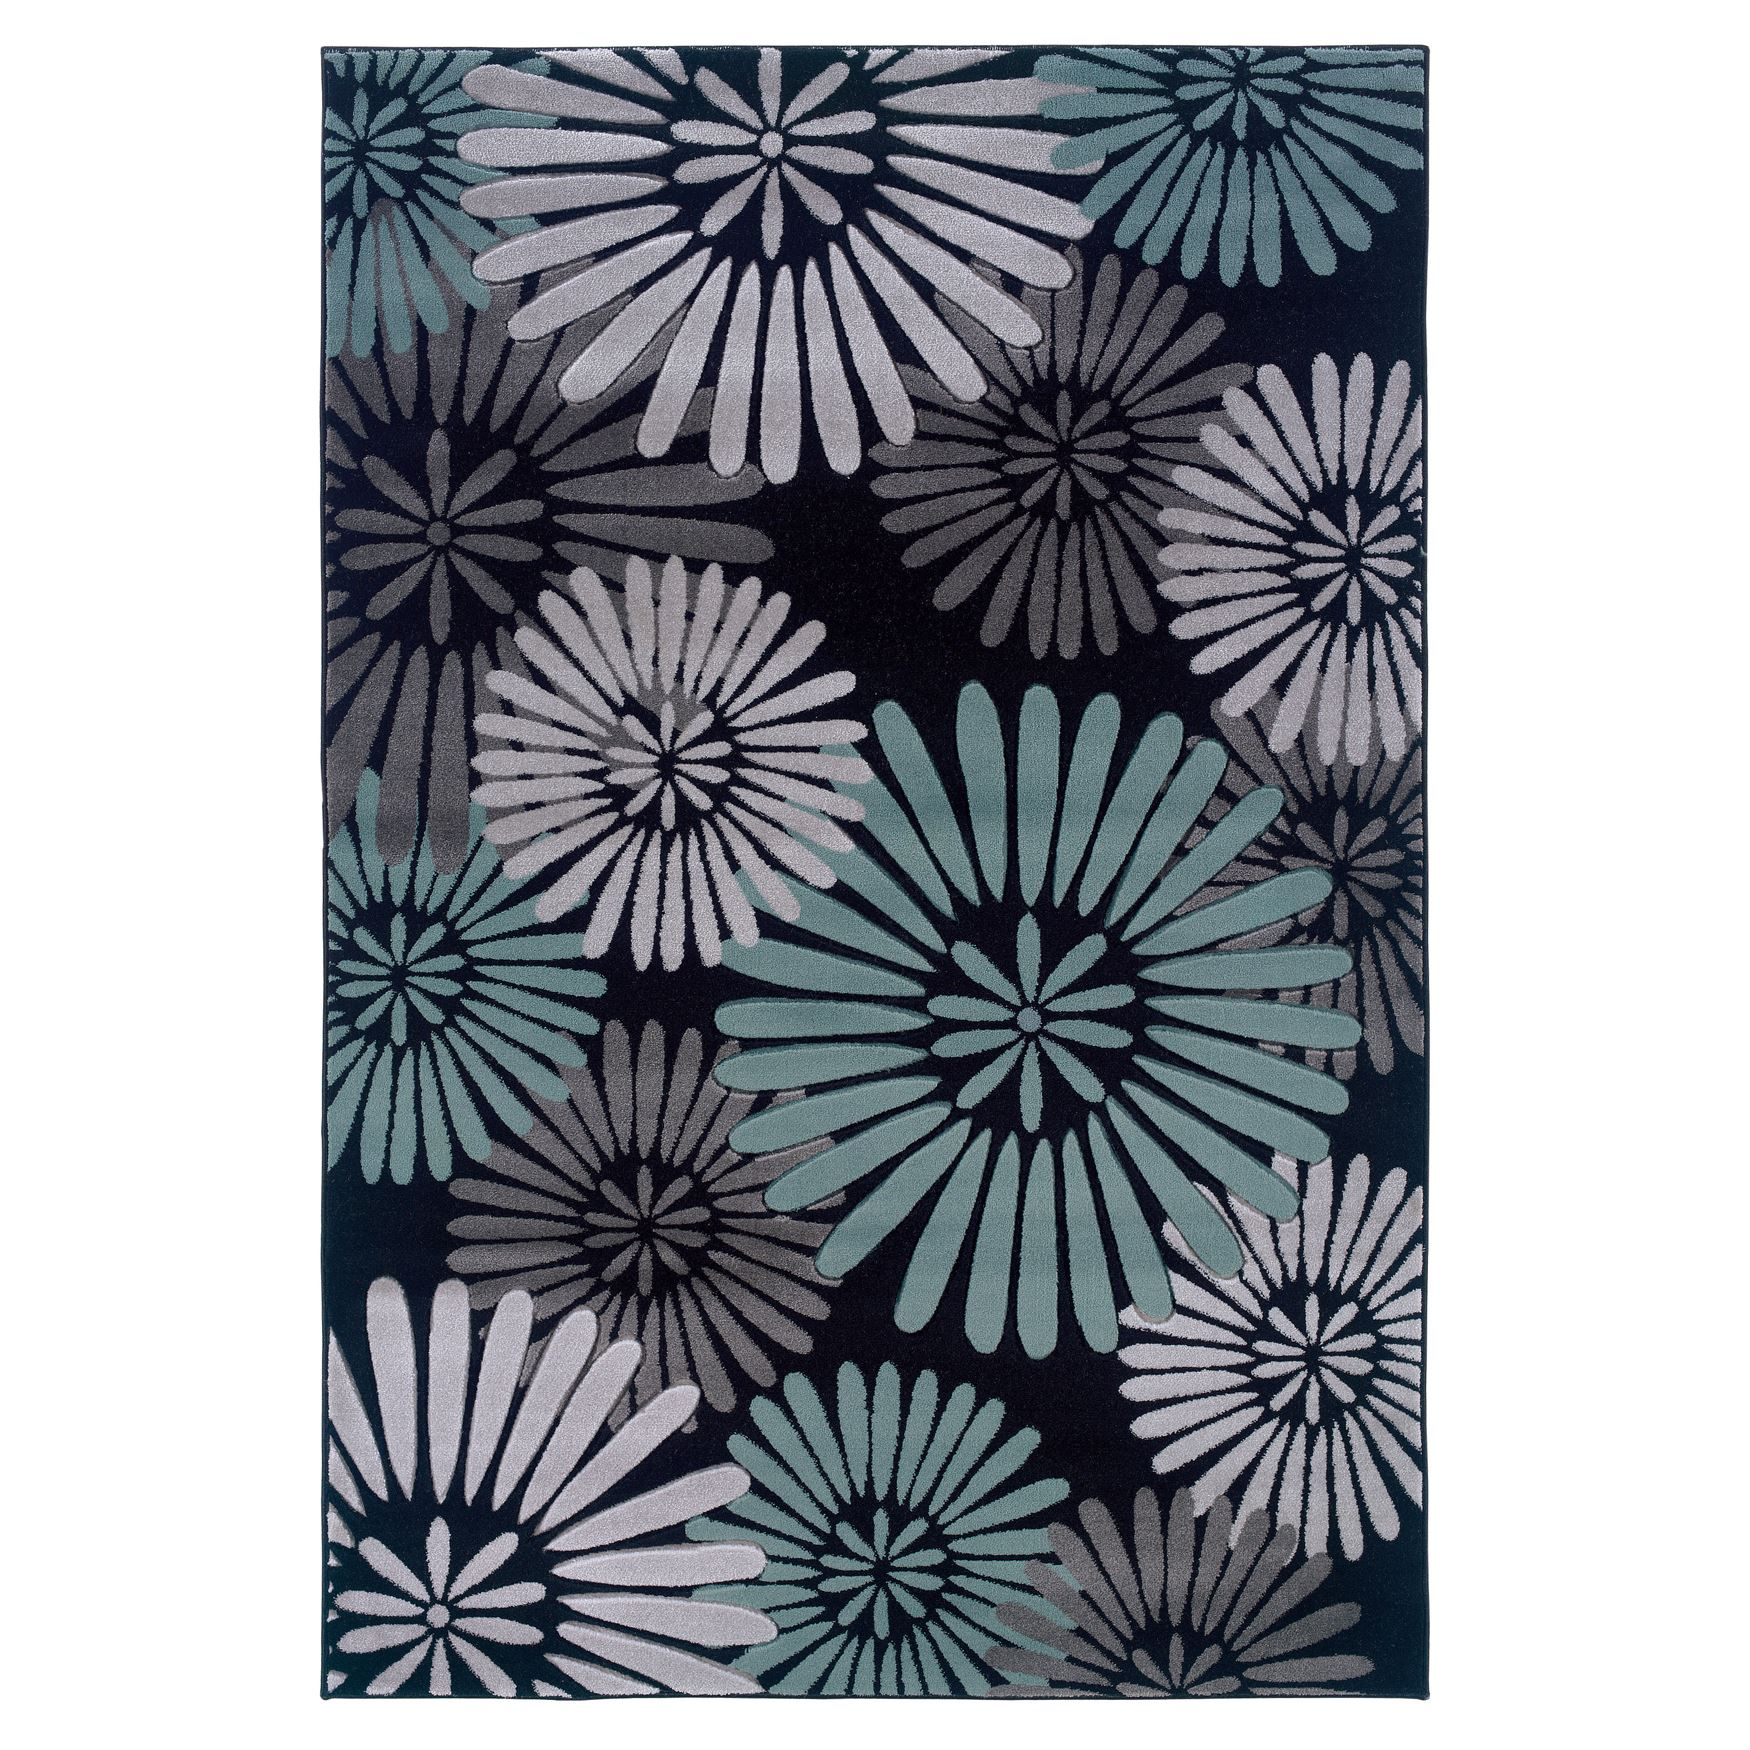 Milan Black/Aqua Area Rug Collection,